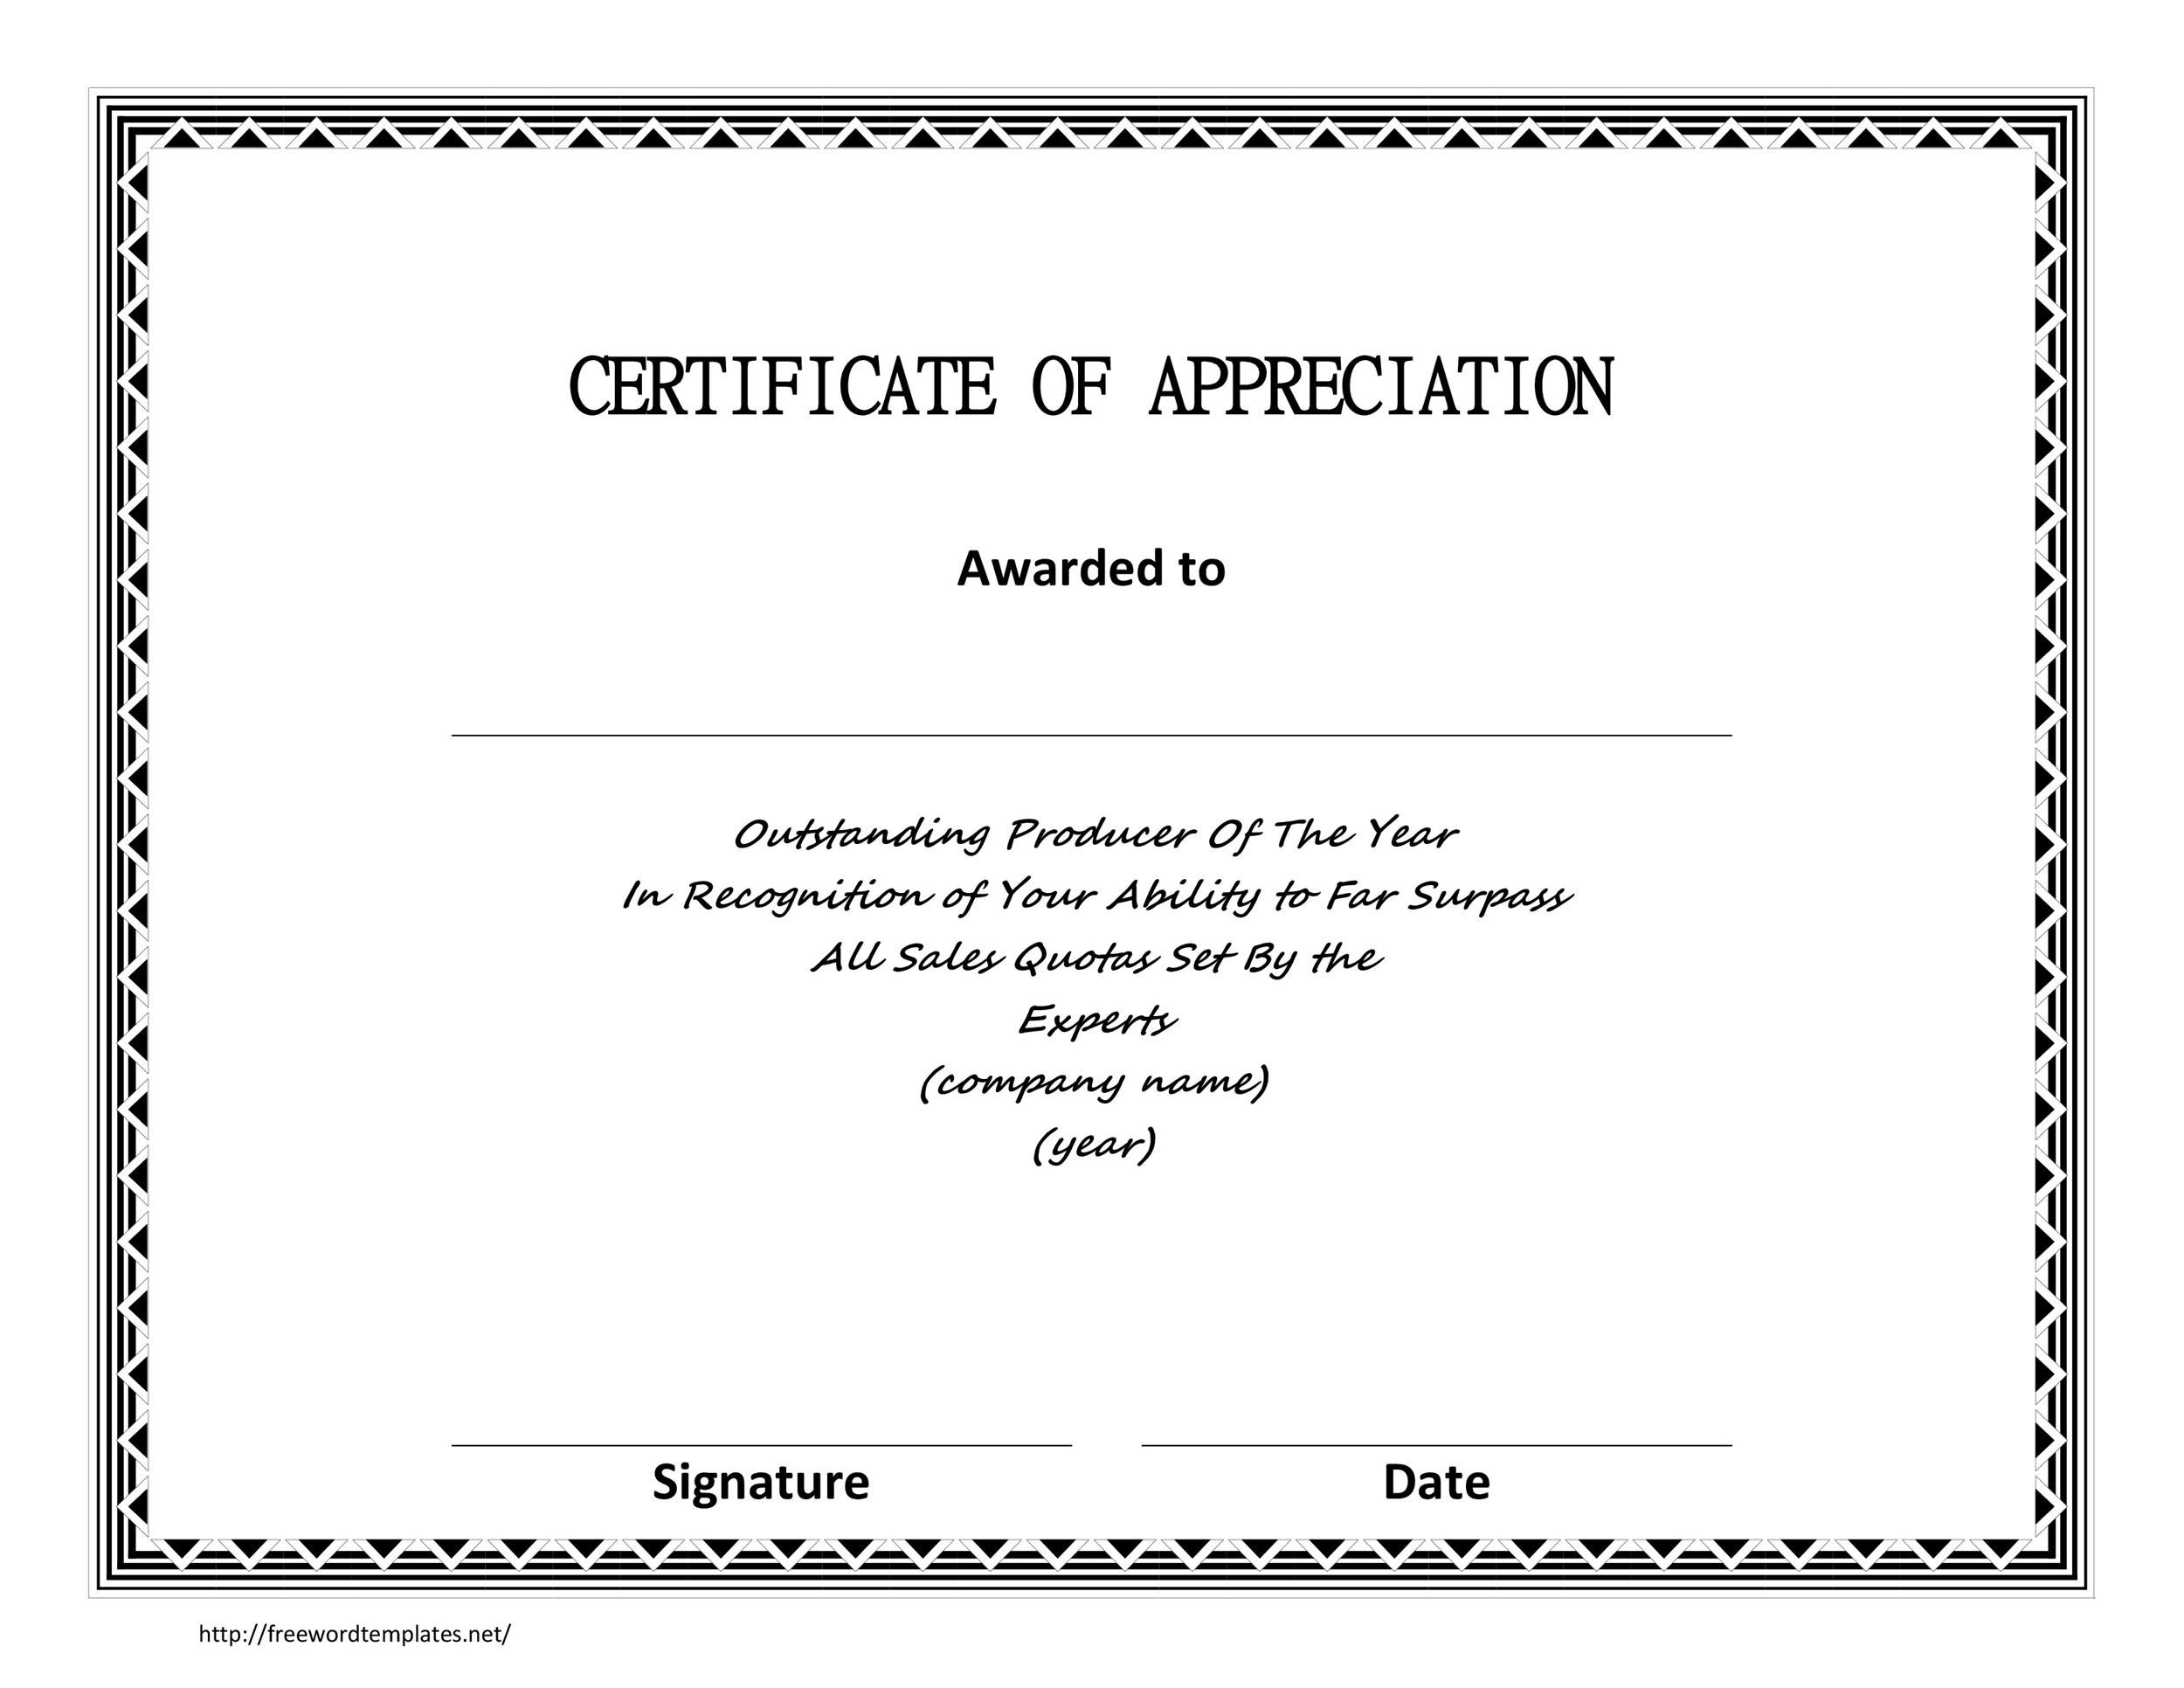 free certificate of appreciation template downloads koni polycode co